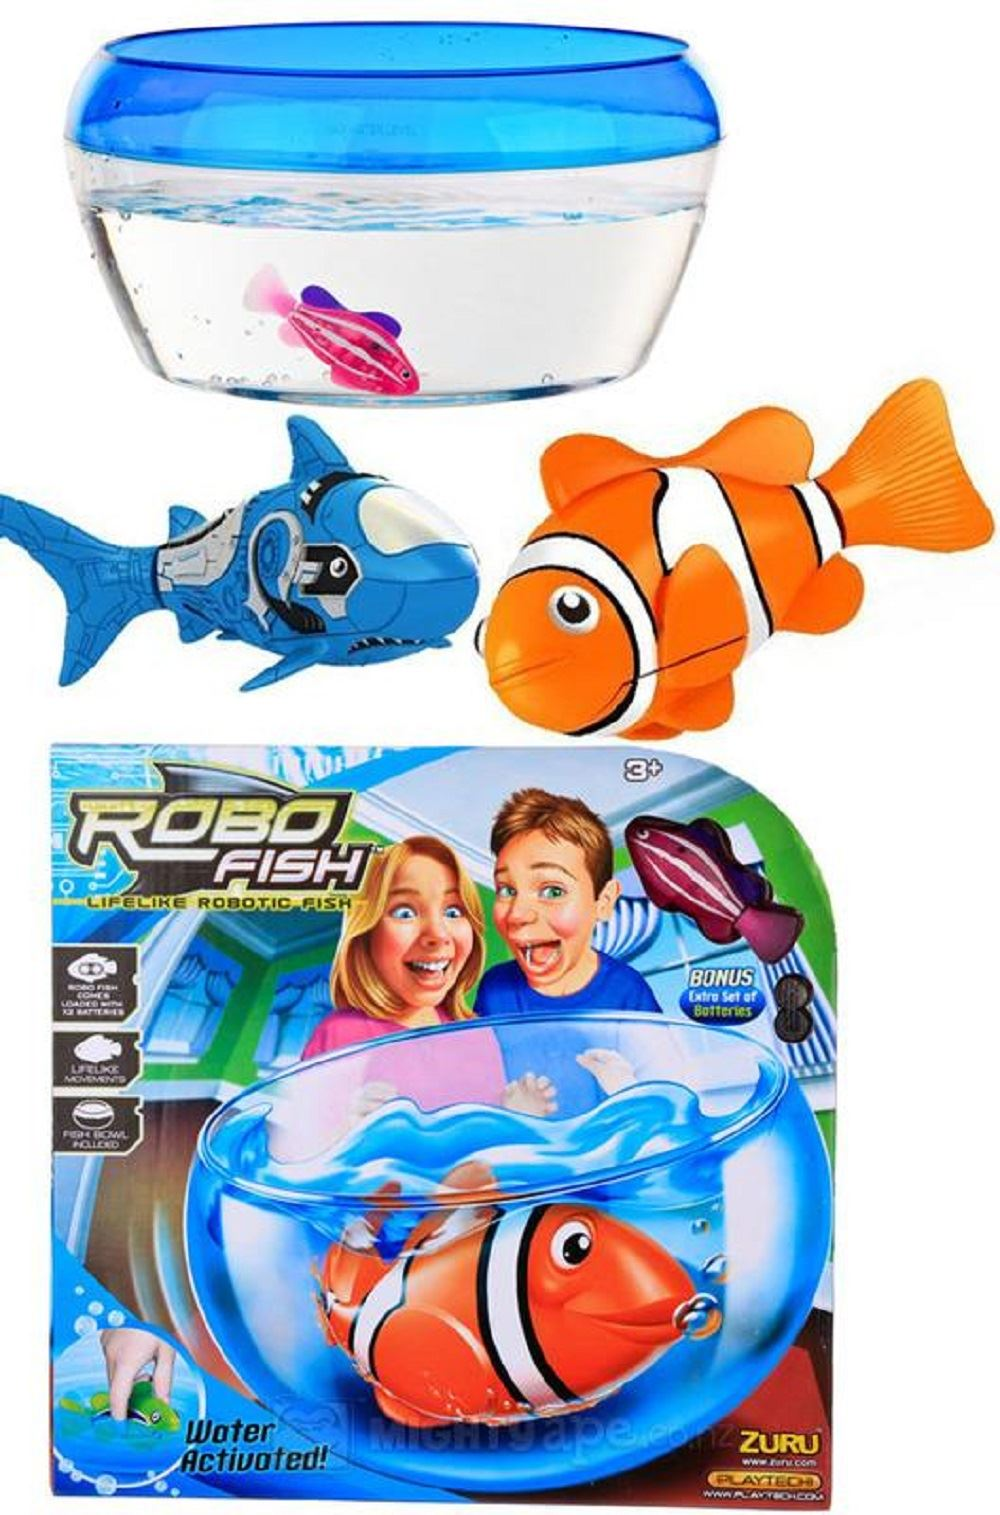 Zuru water activated robo robotic electronic swimming fish for Robo fish toy